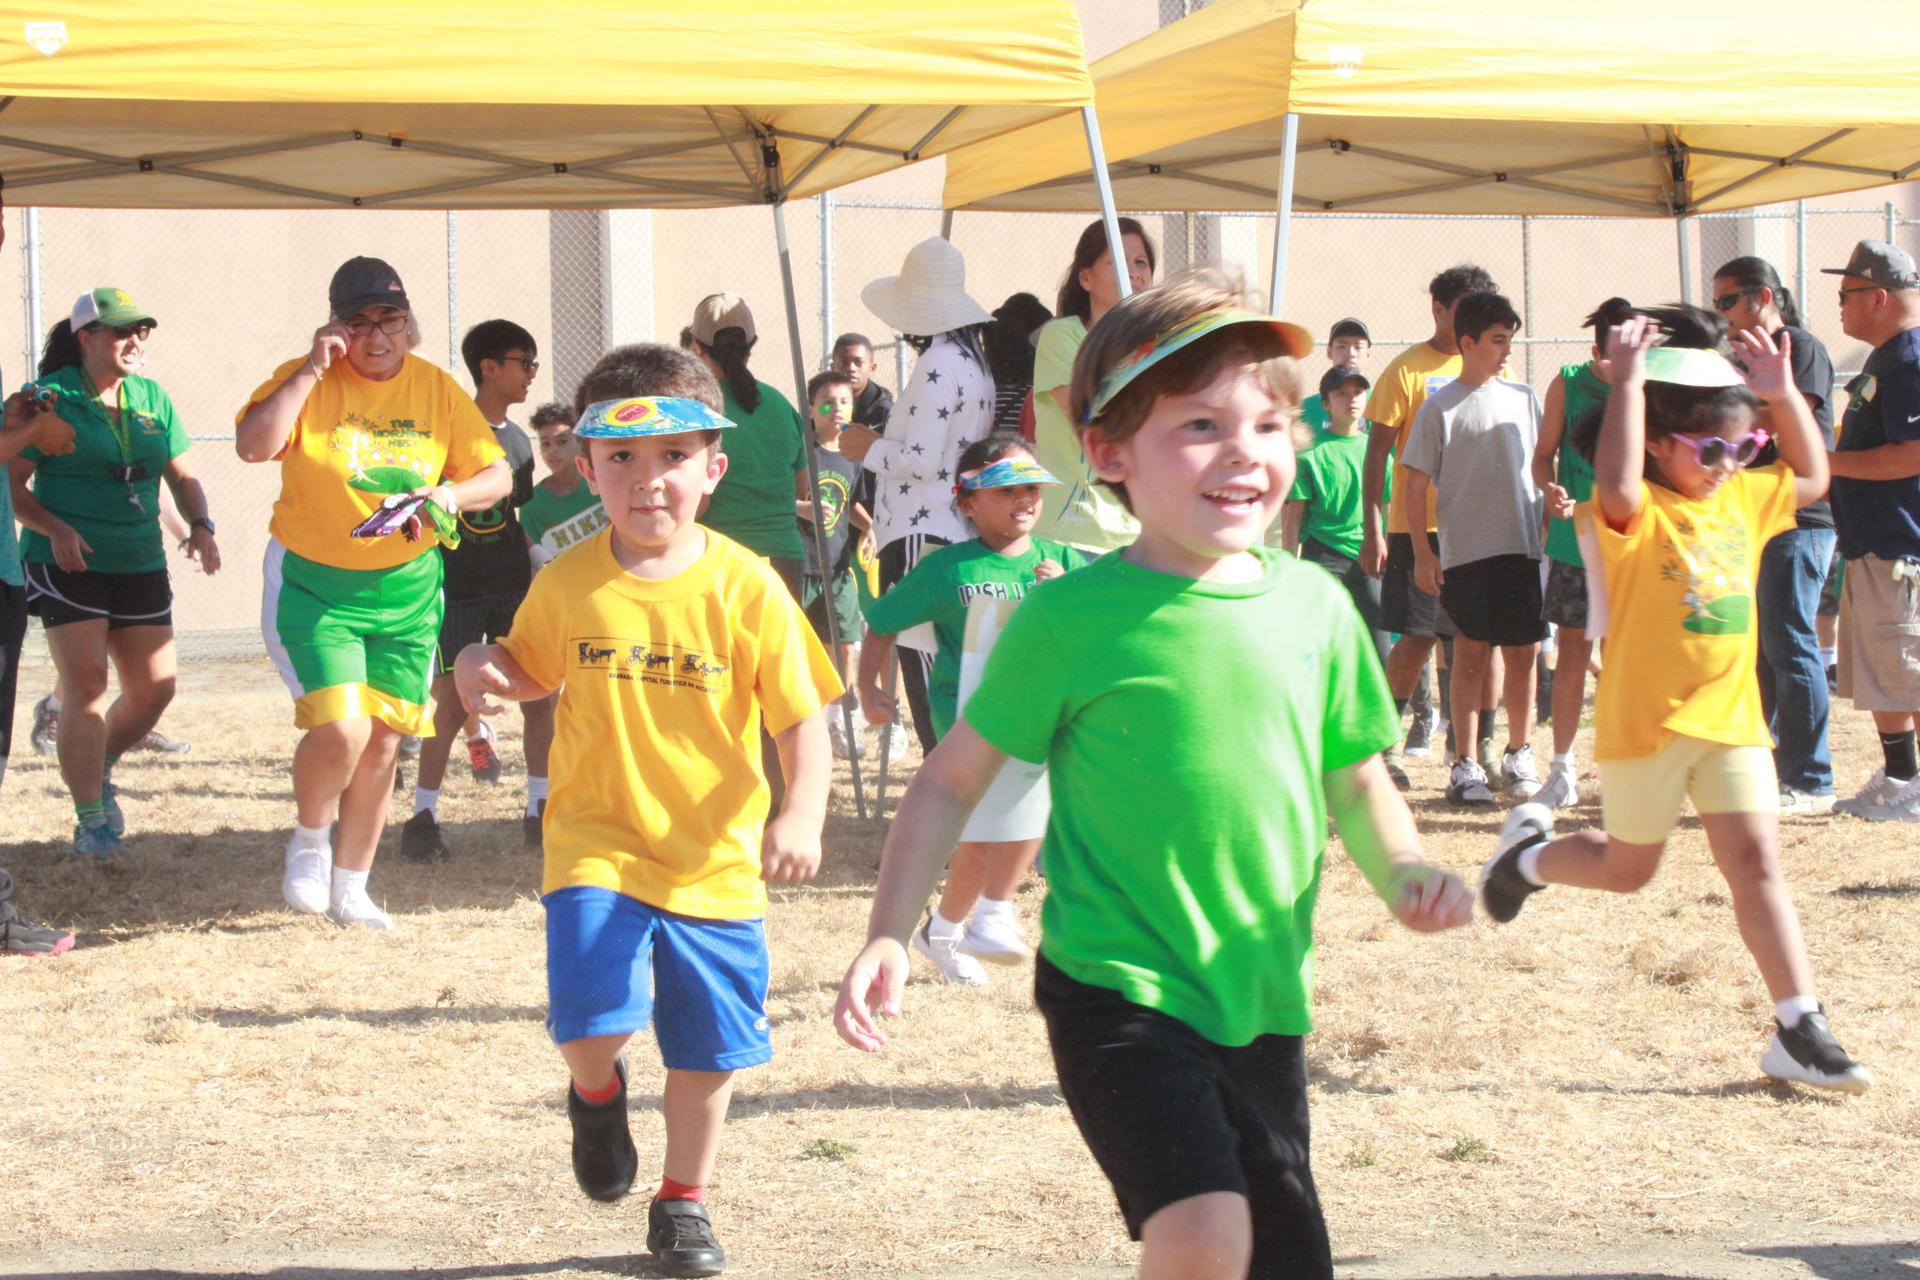 At our annual Jog-a-Thon, students run around the field to raise money for our school.